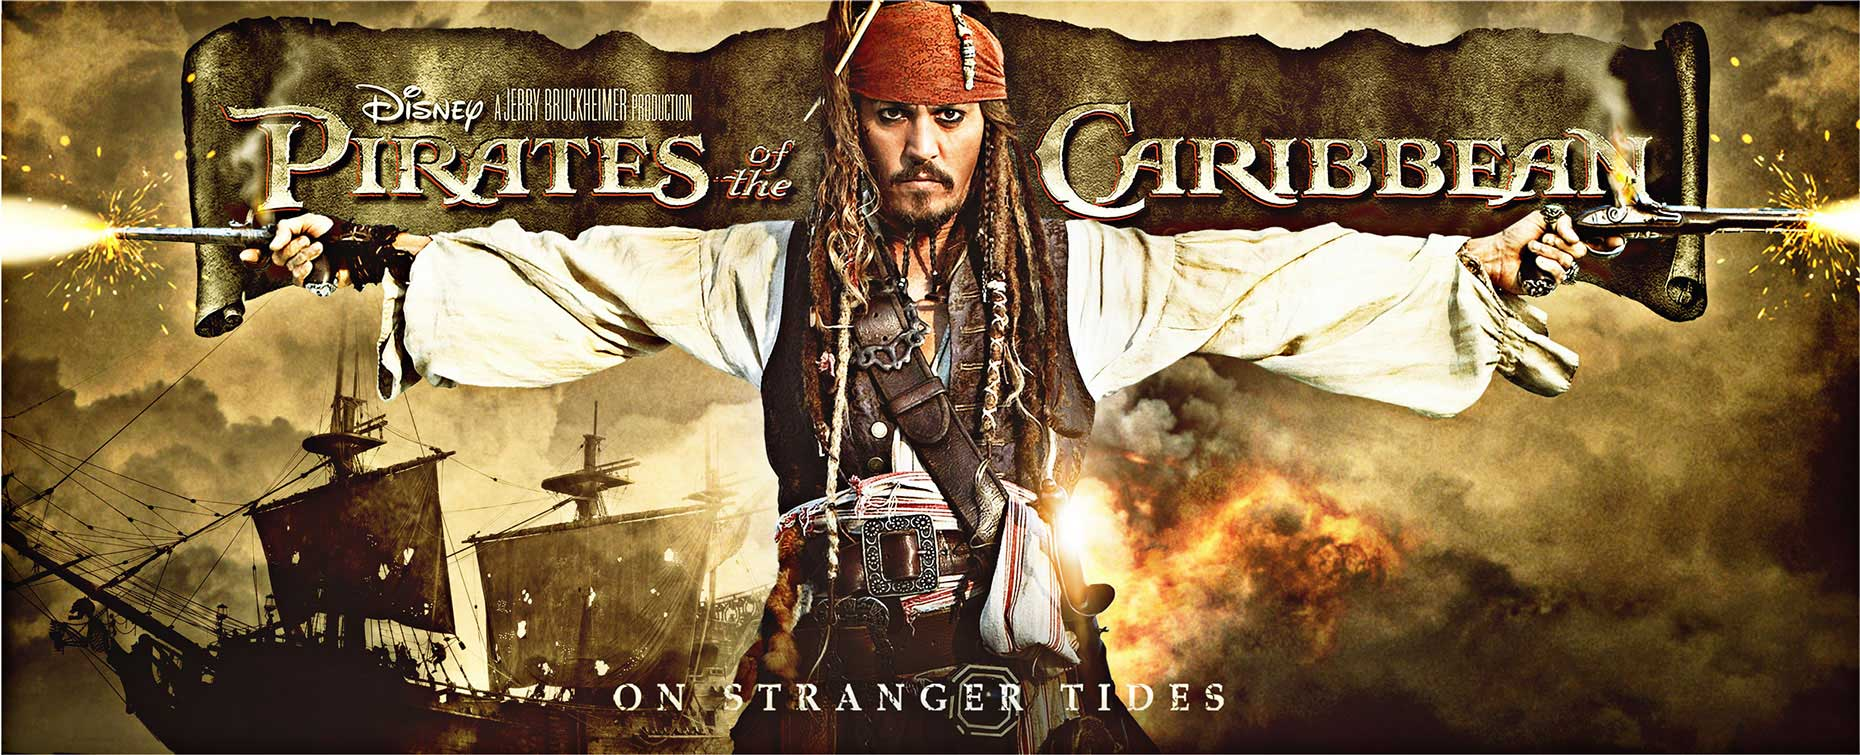 Photo-Imaging_Entertainment_Pirates of the caribbean-Mike Bryan